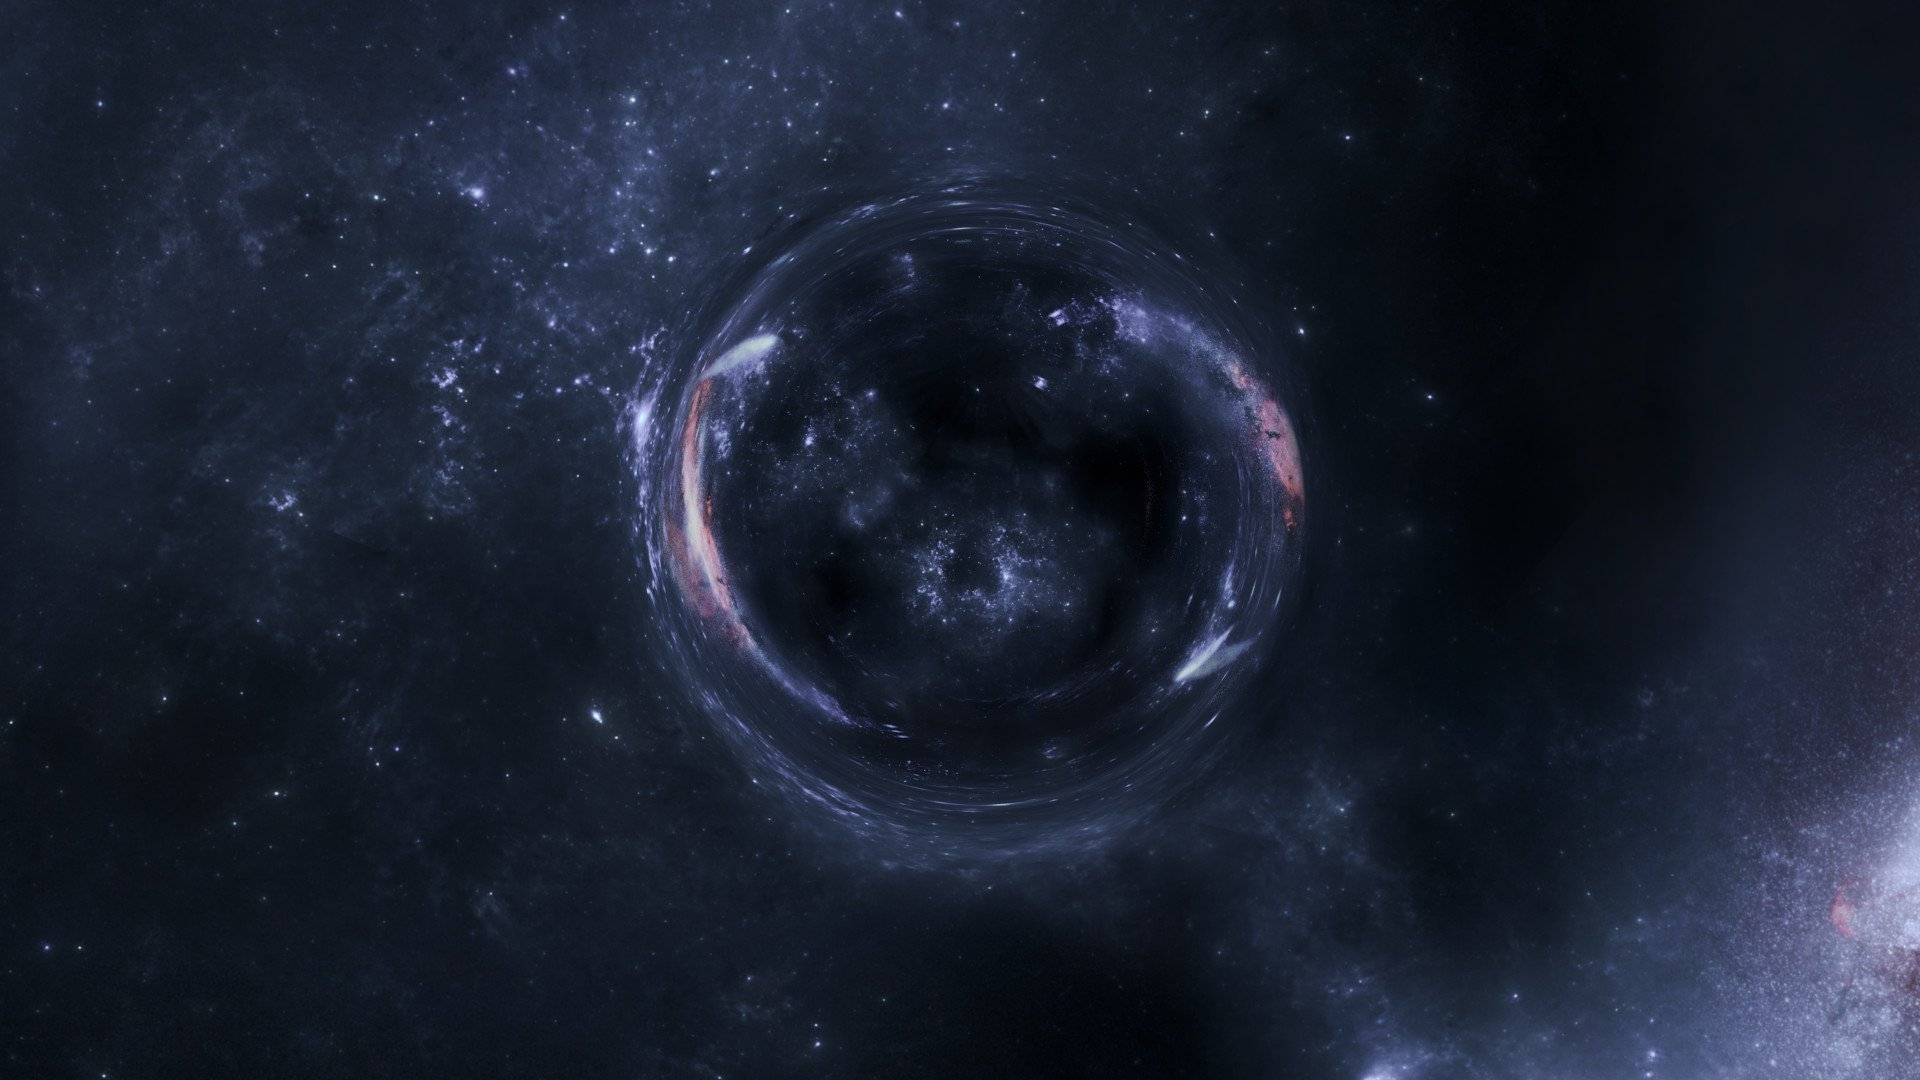 Interstellar Wormhole Fondo De Pantalla Hd Fondo De